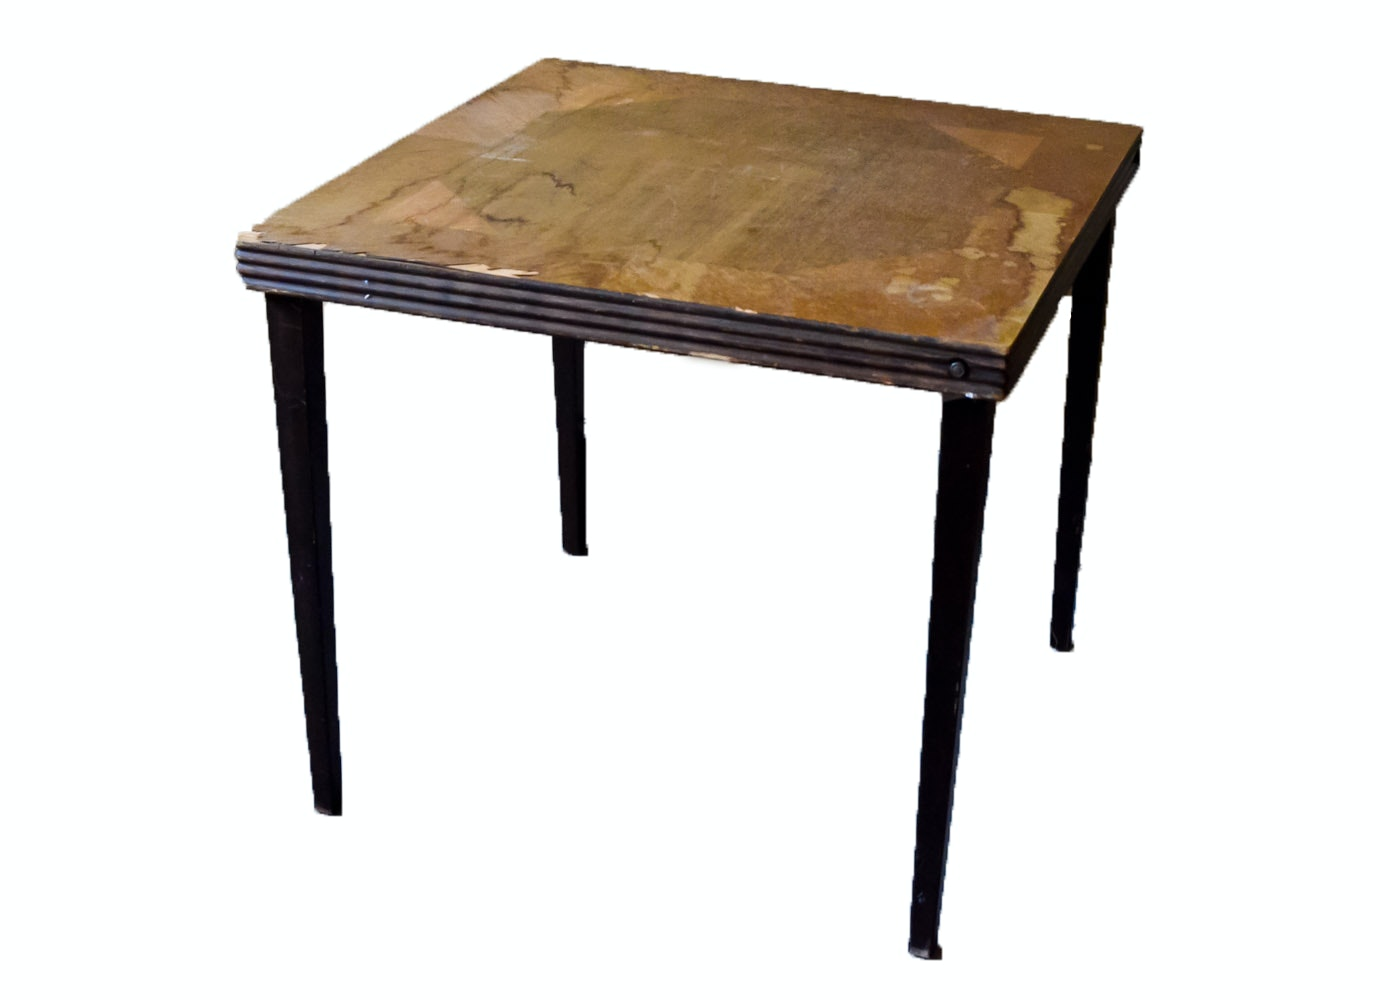 1930s Folding Card Table  Ebth. Desk Ideas For Office. Tool Box Drawer Liner Foam. Mango Wood End Table. Plastic Drawer Unit. Office Etiquette Eating At Your Desk. Asian Tables. Nko Help Desk. Nice Computer Desk